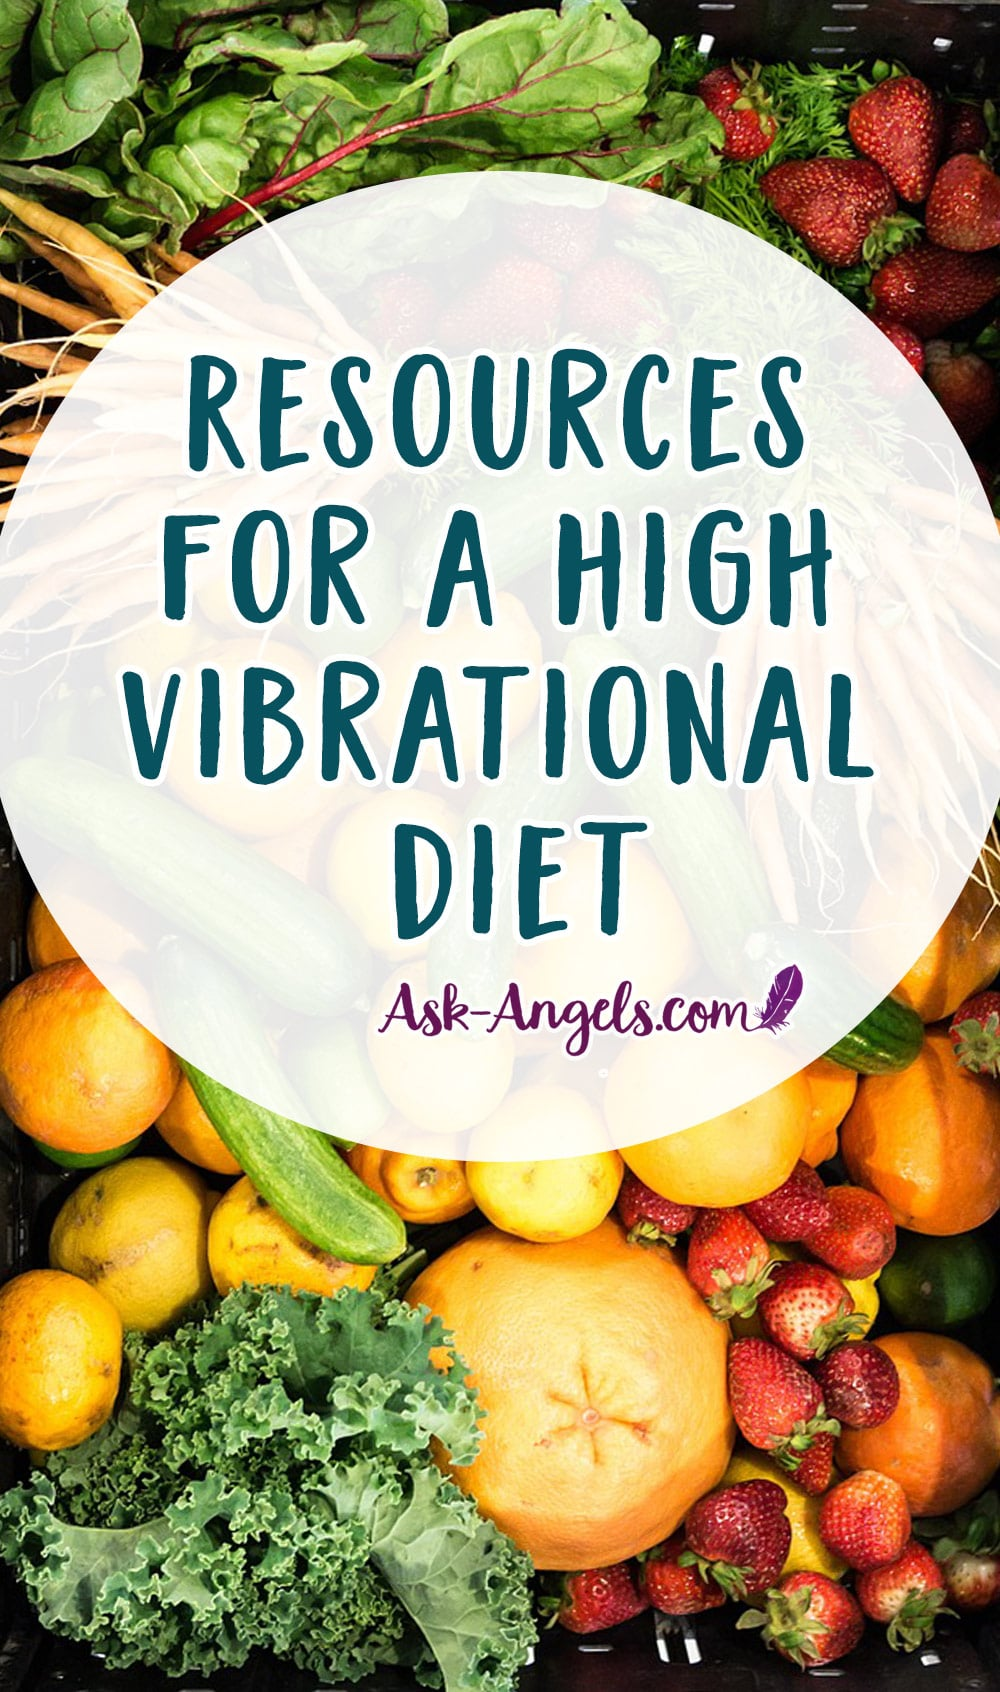 Resources for a High Vibrational Diet